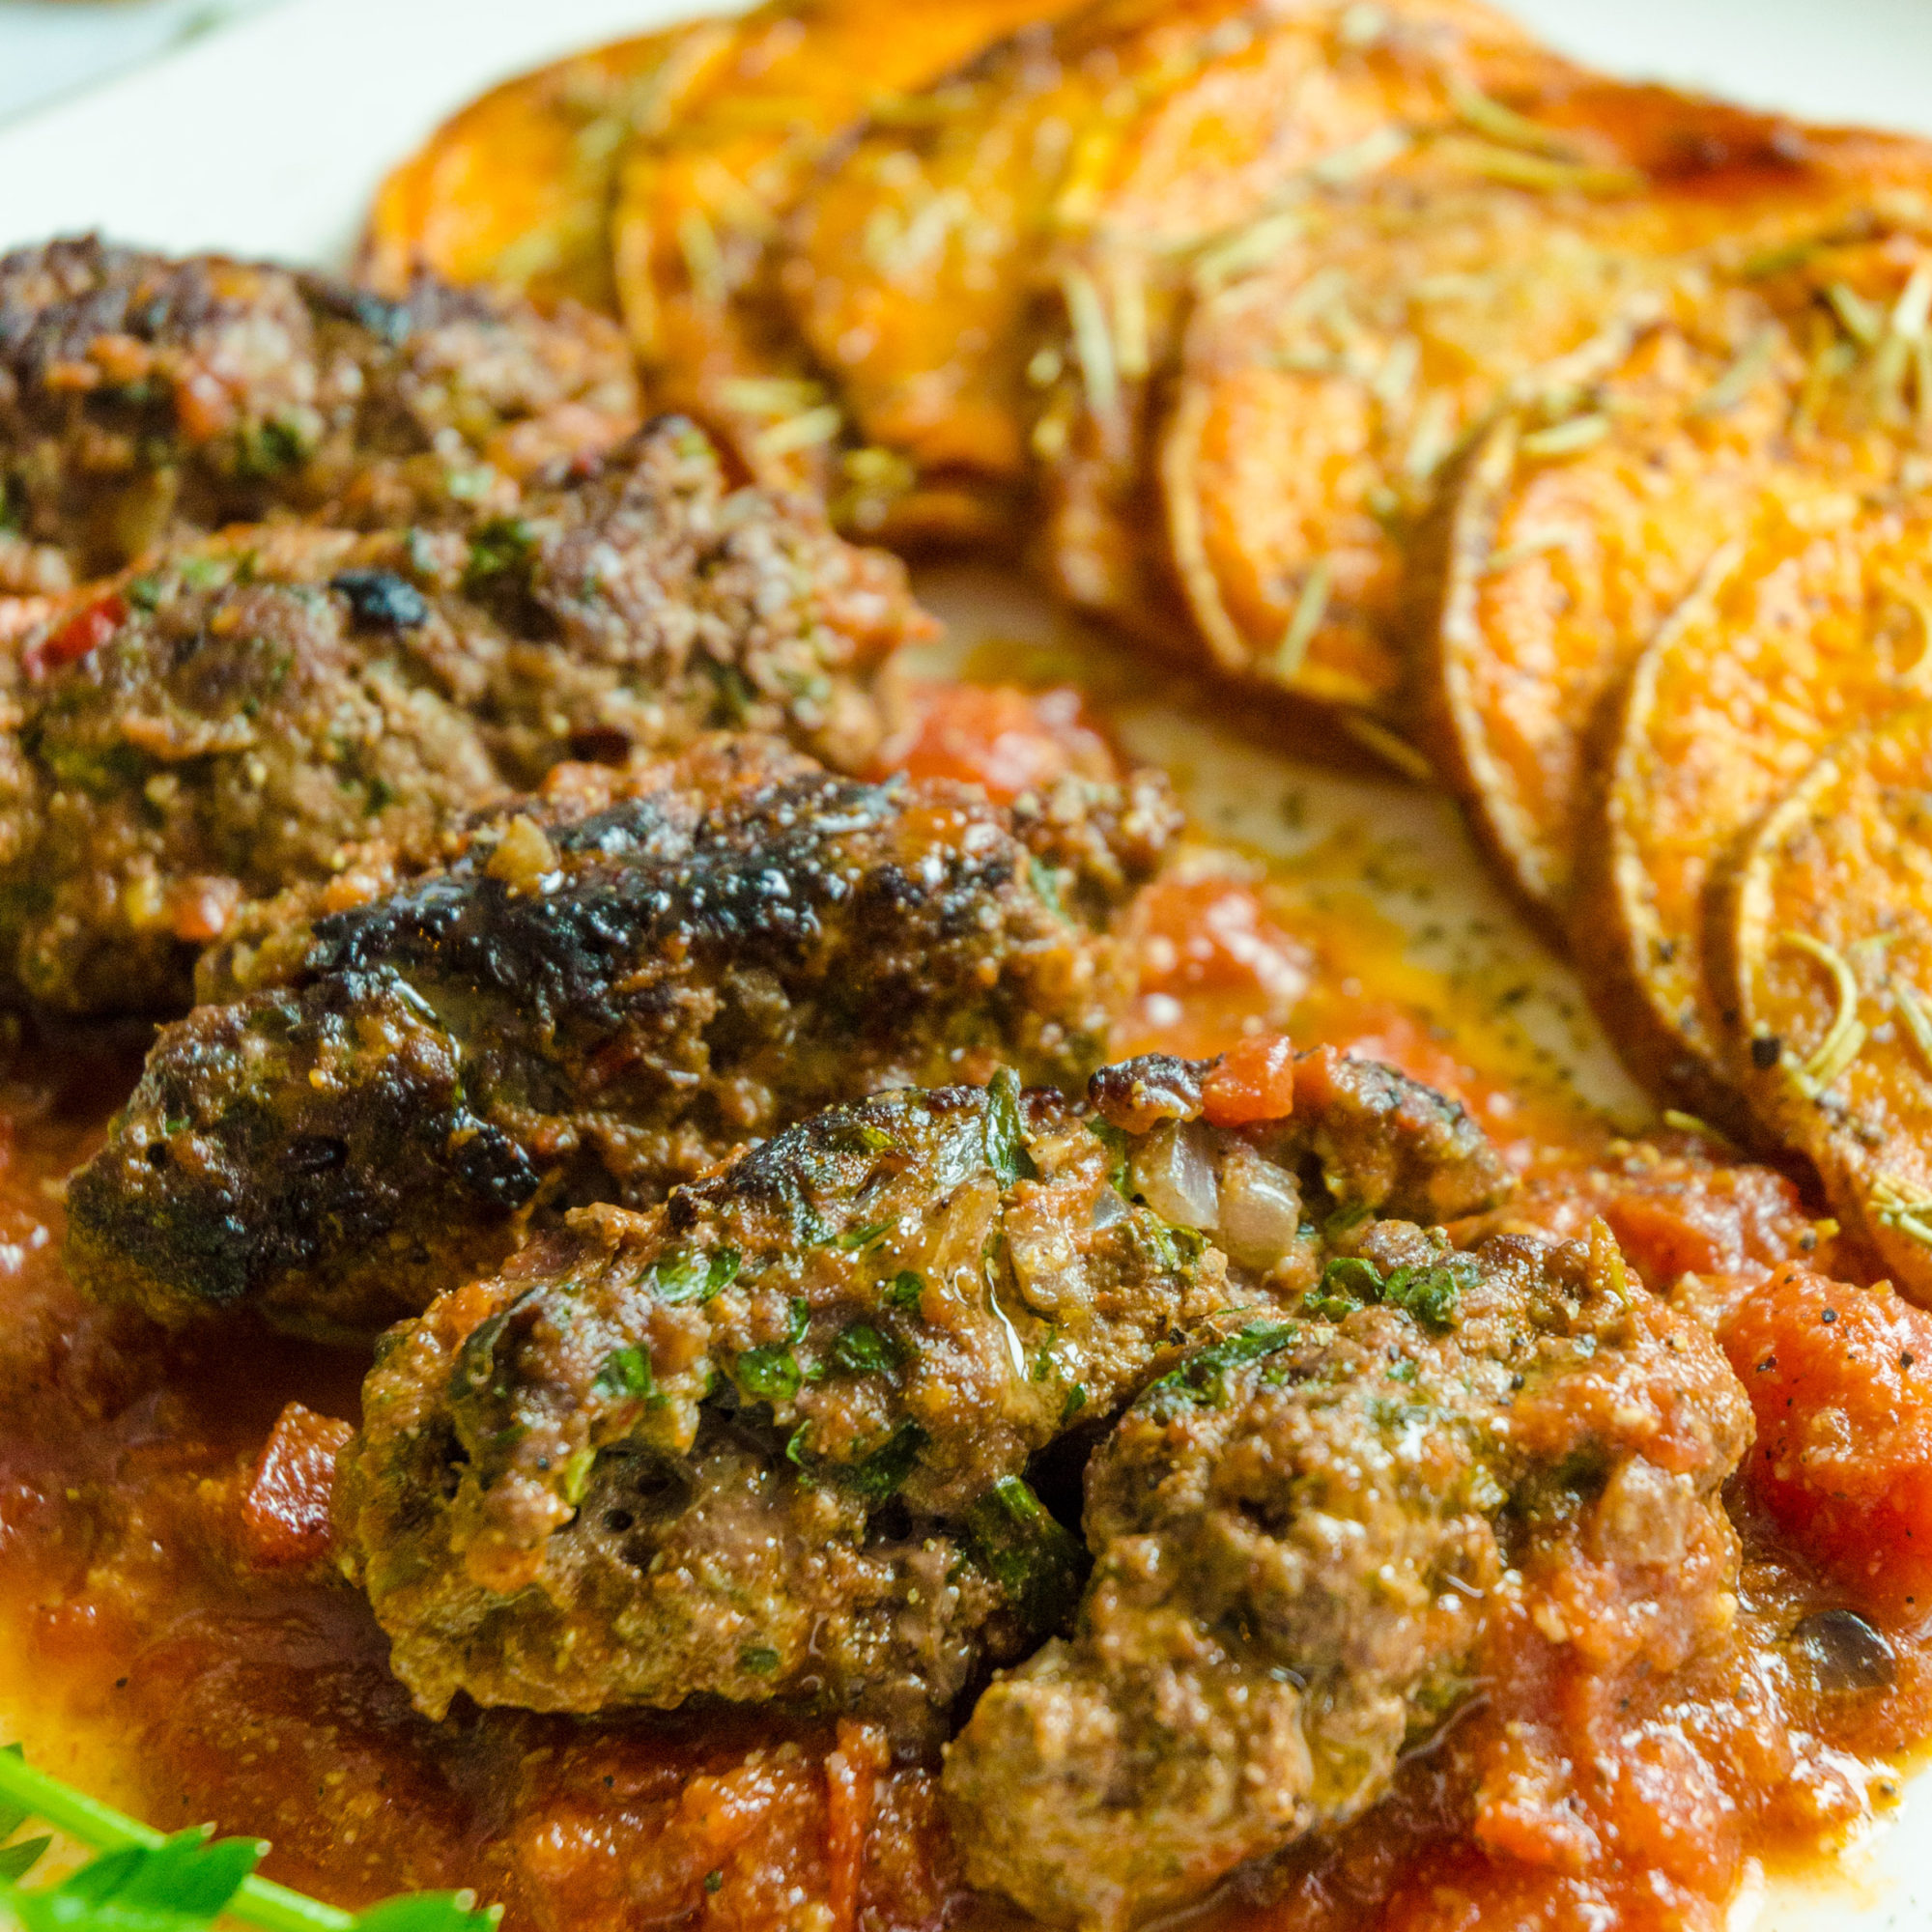 Middle Eastern spices mixed with fresh herbs rolled into minced meat and baked in a spiced tomato sauce